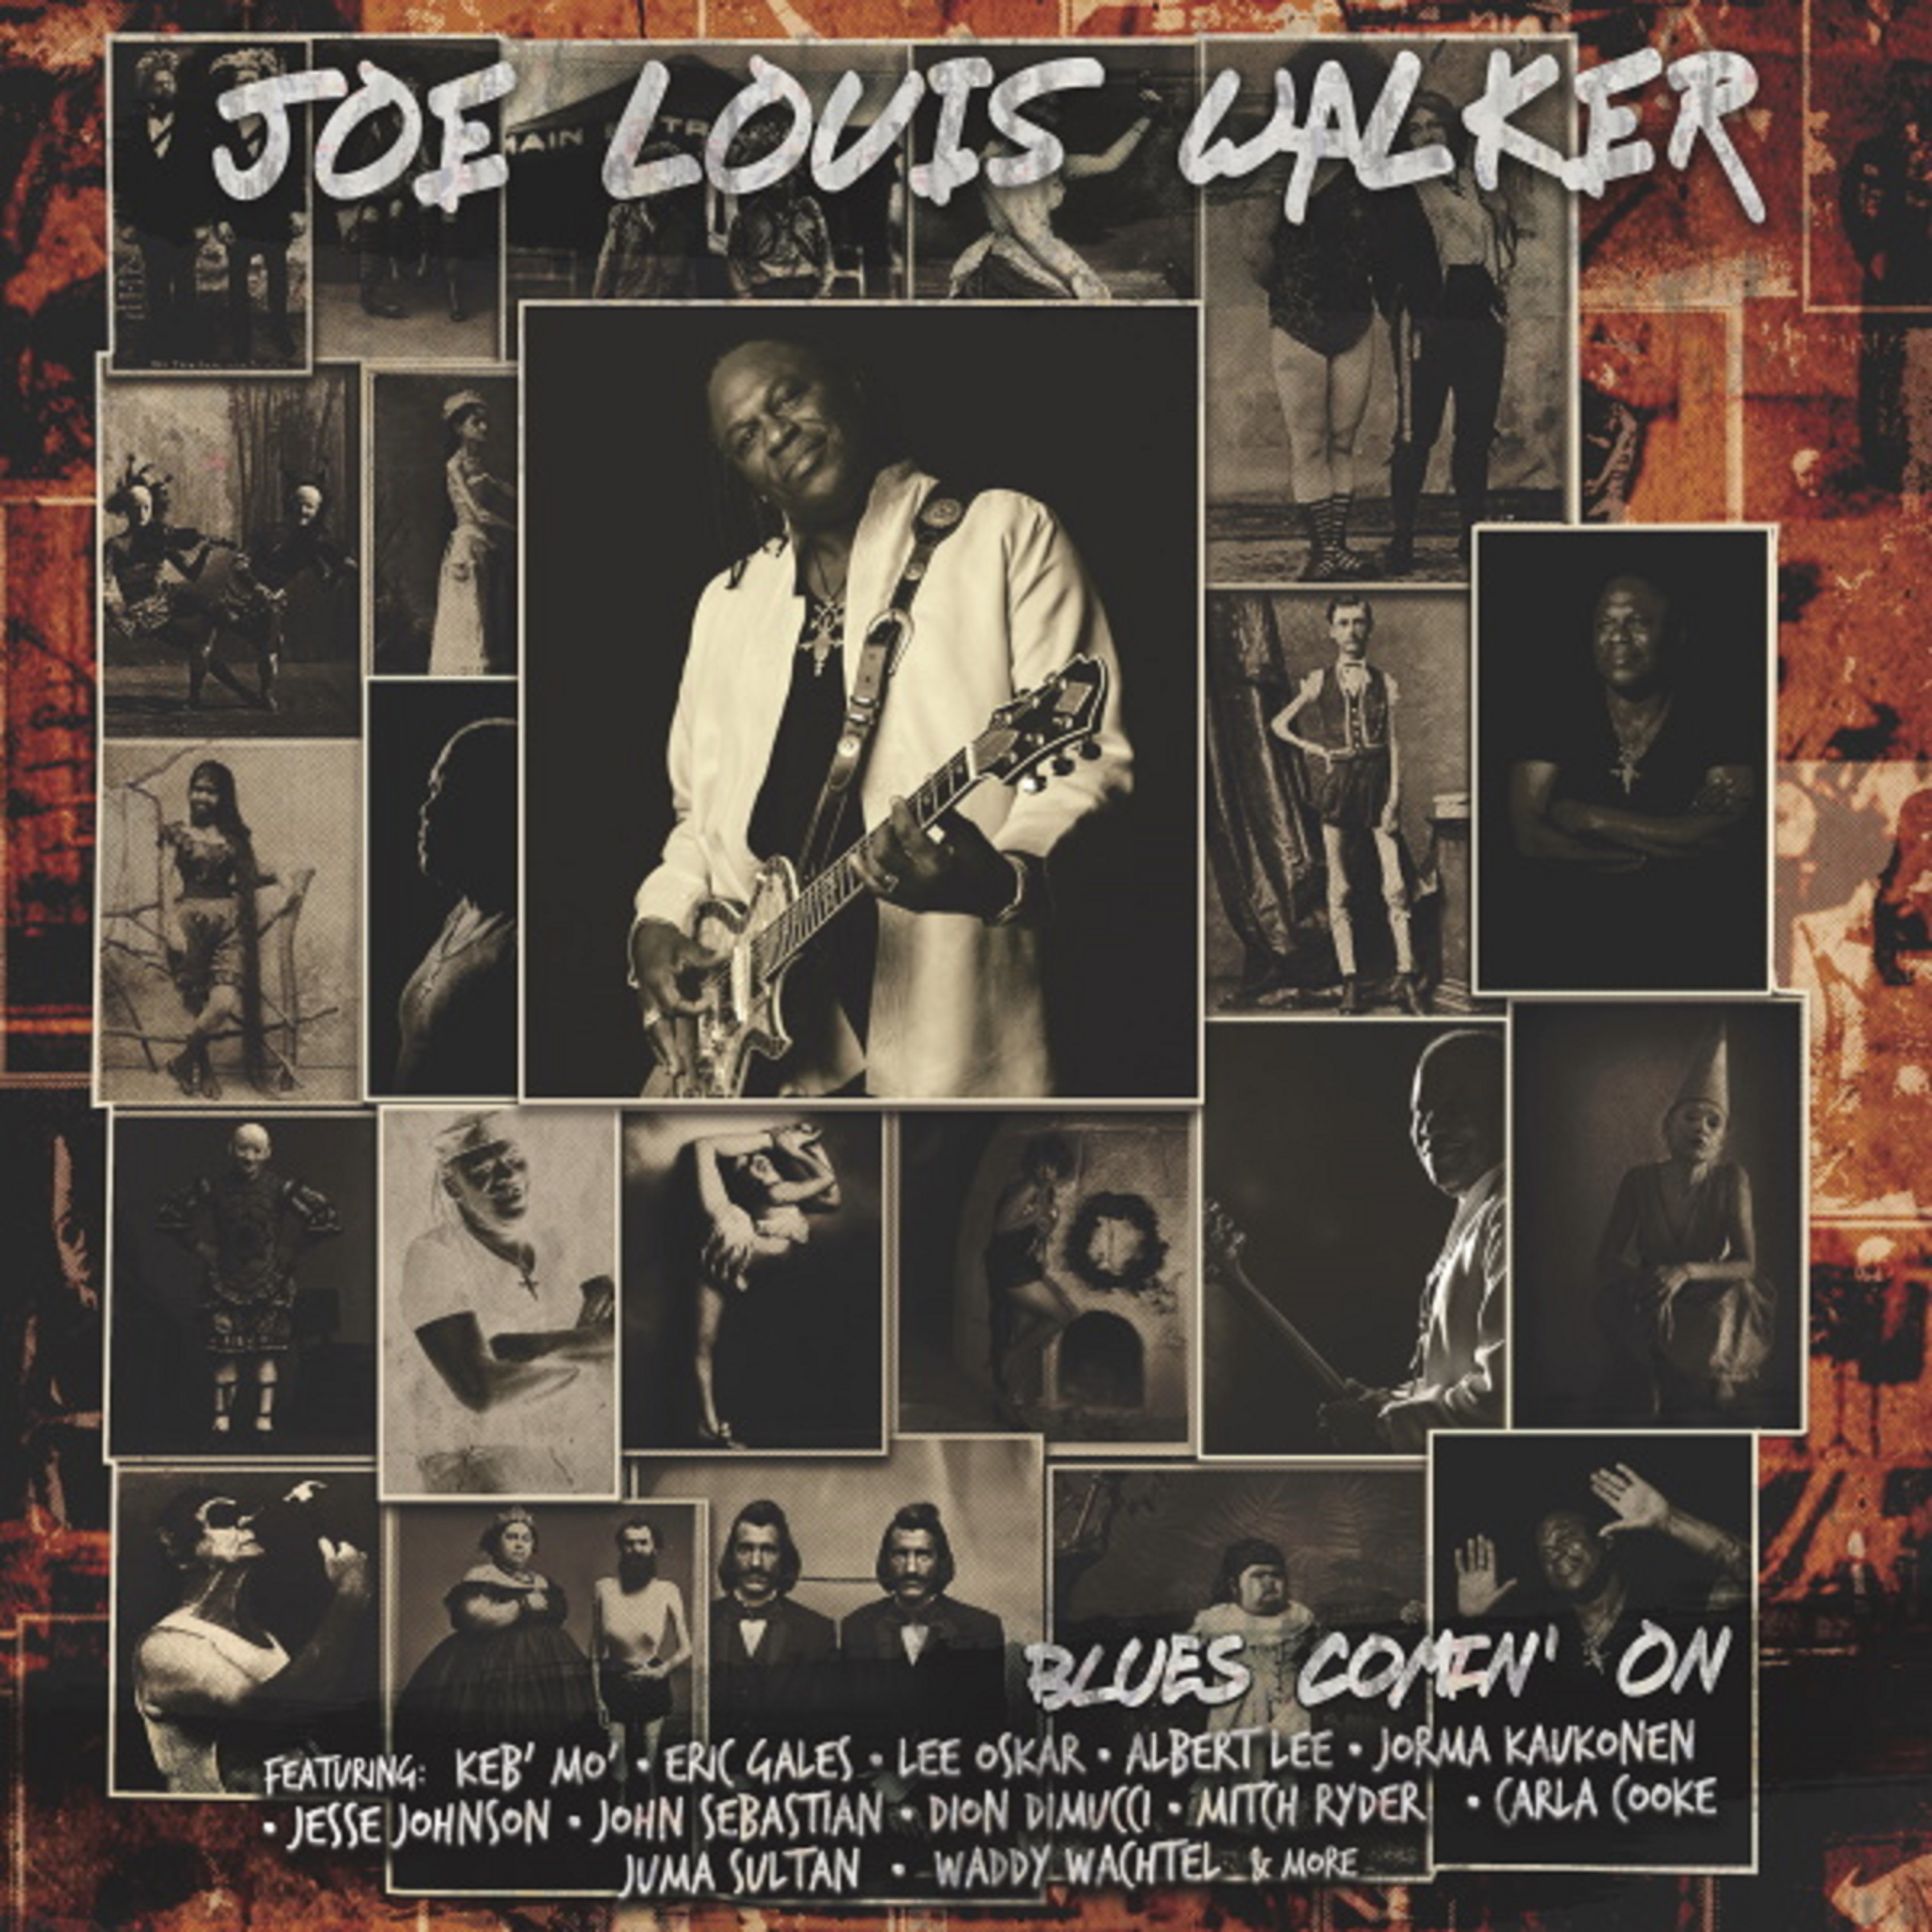 RIC GALES & JOE LOUIS WALKER Team Up On A Brand New Single & Video